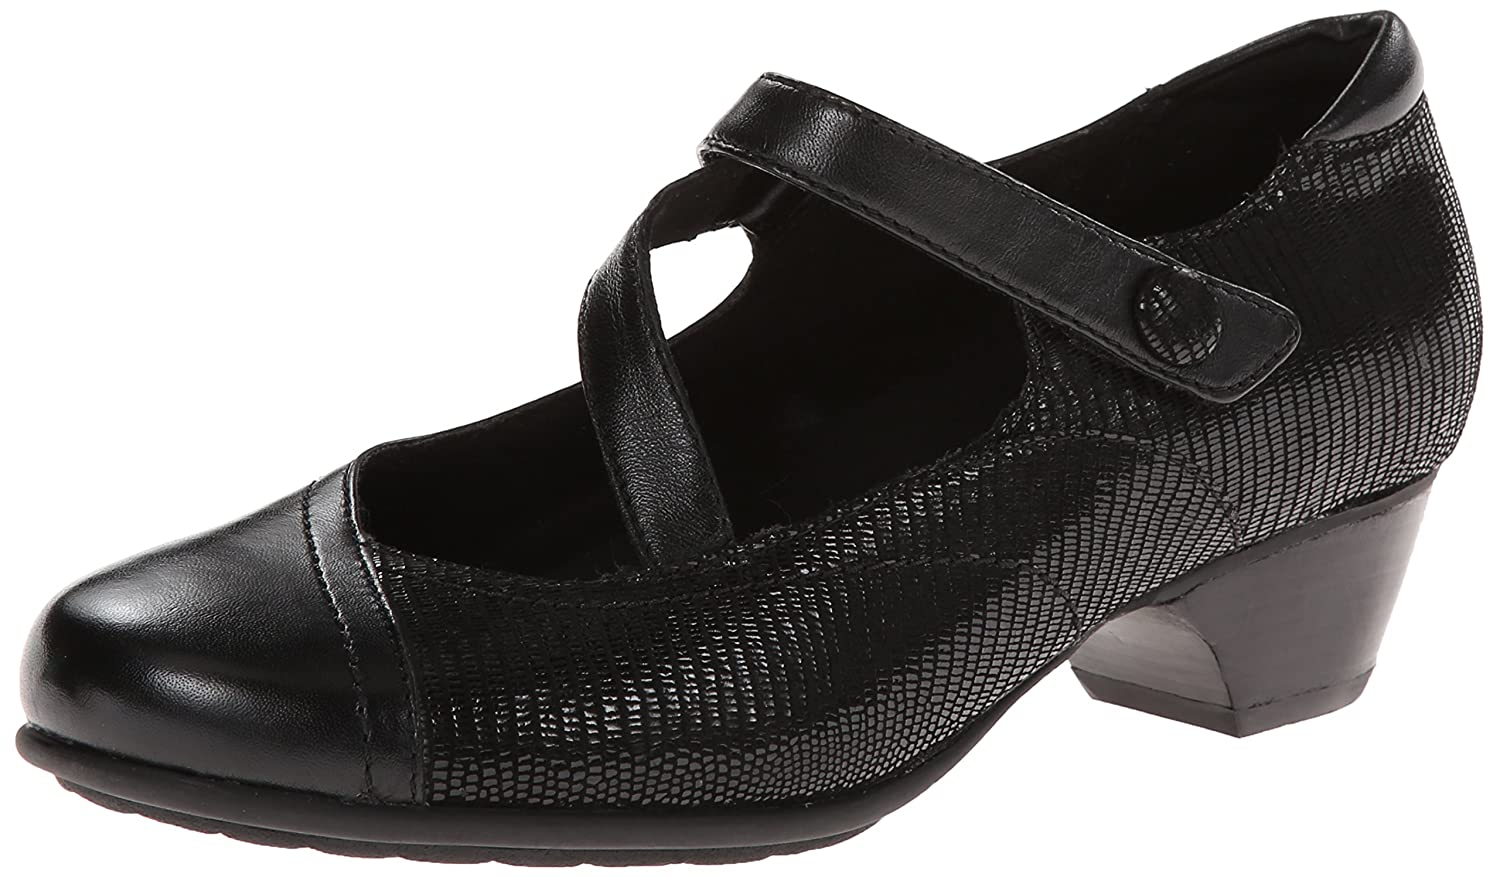 Aravon Women's Portia - AR Dress Pump B00IFPOZMQ 7 2E US|Black Multi